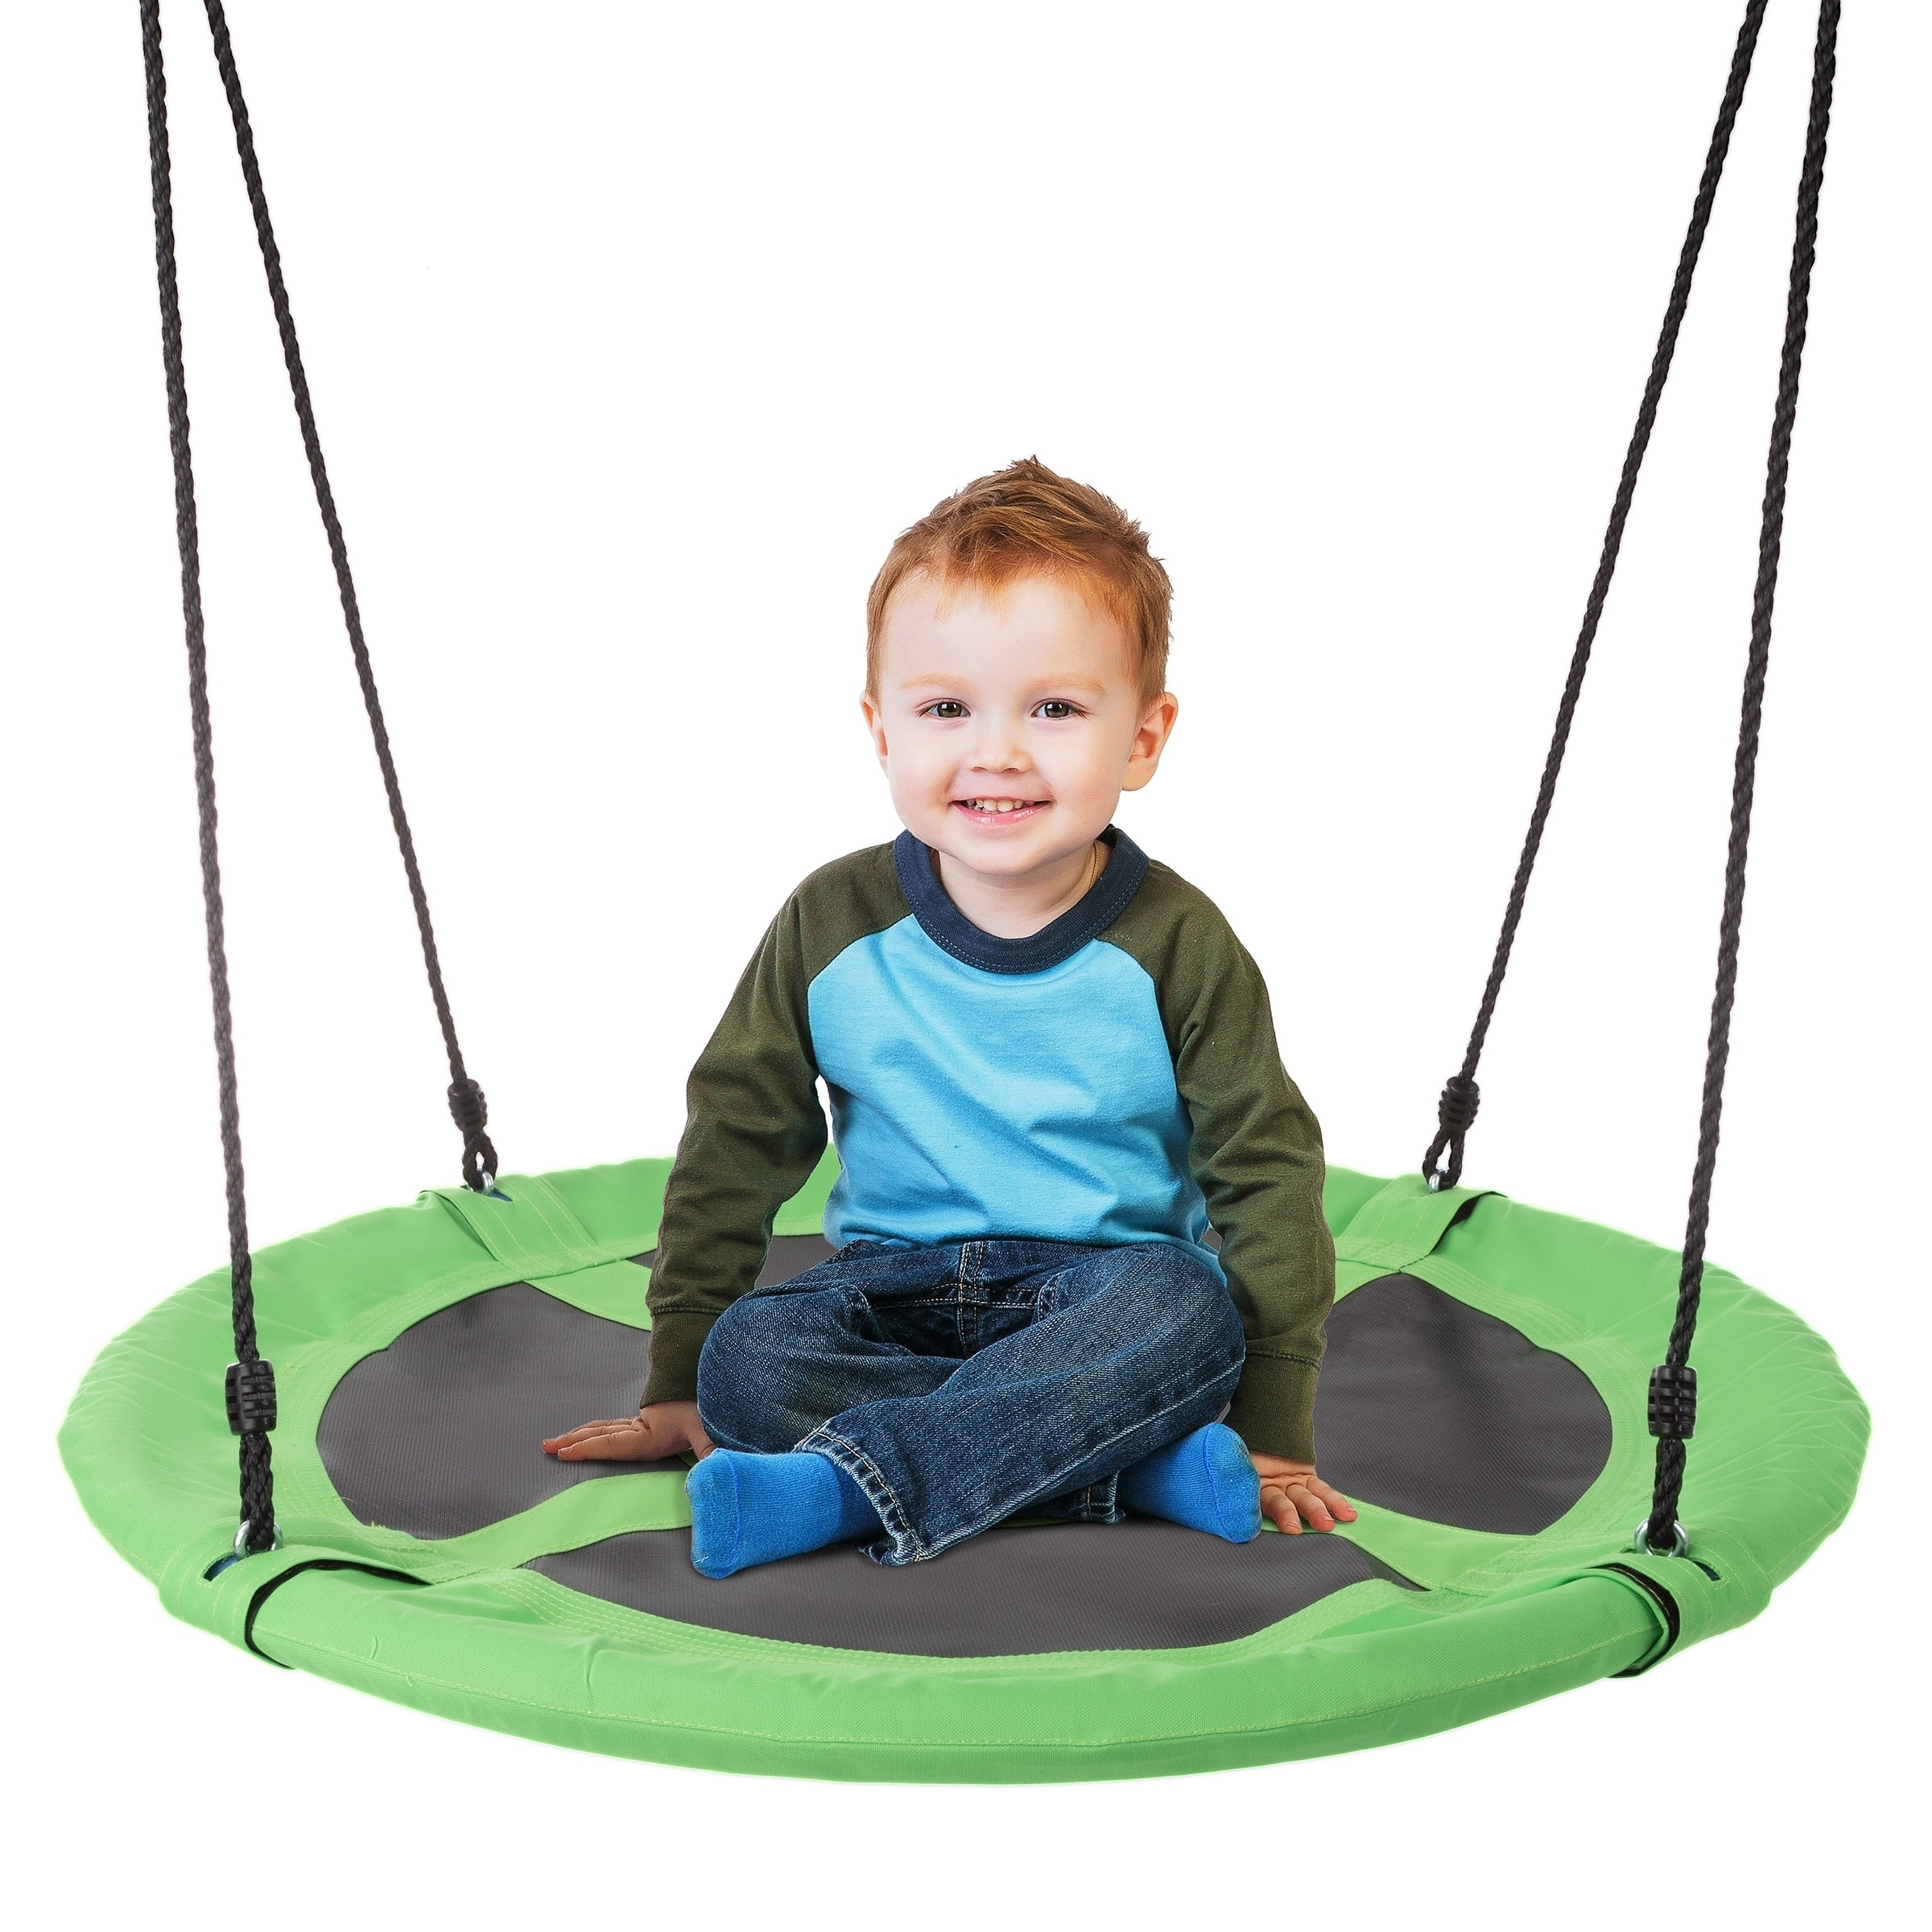 Outdoor Baby Swing Green Seat with Adjustable Ropes